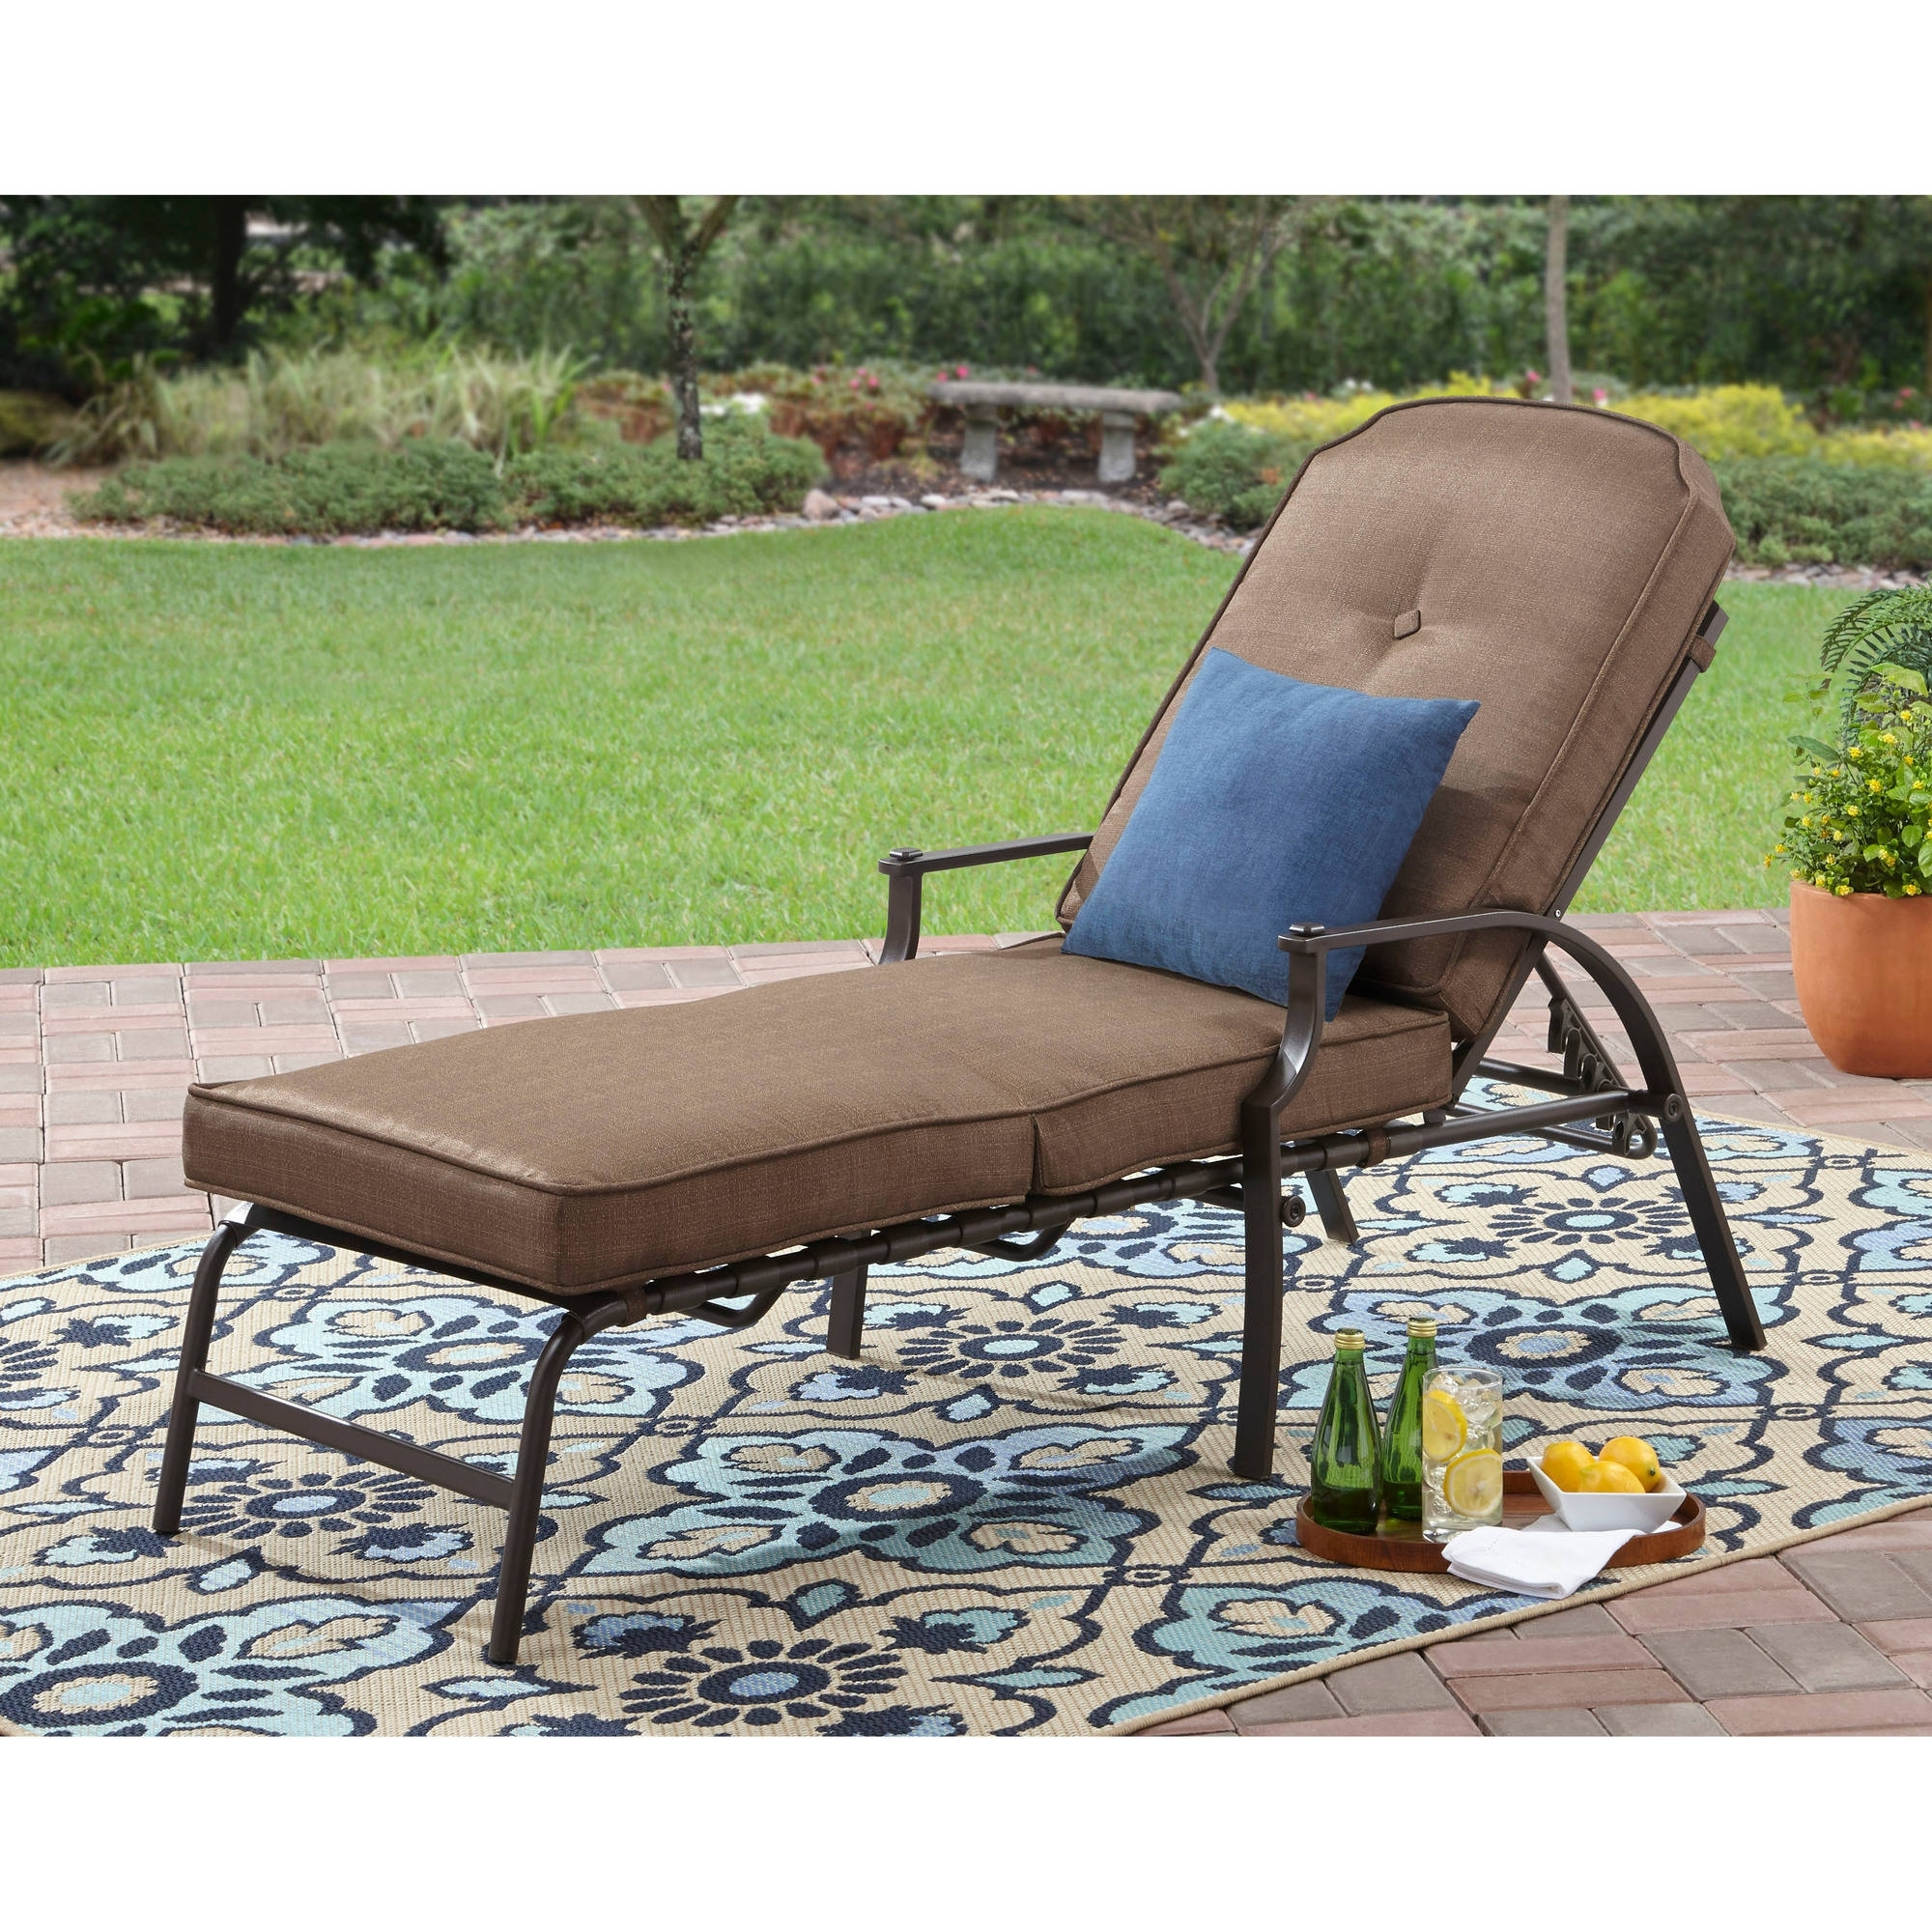 Latest Lounge Chair : Outdoor Sun Tanning Chairs Iron Chaise Lounge Within Adjustable Pool Chaise Lounge Chair Recliners (View 8 of 15)